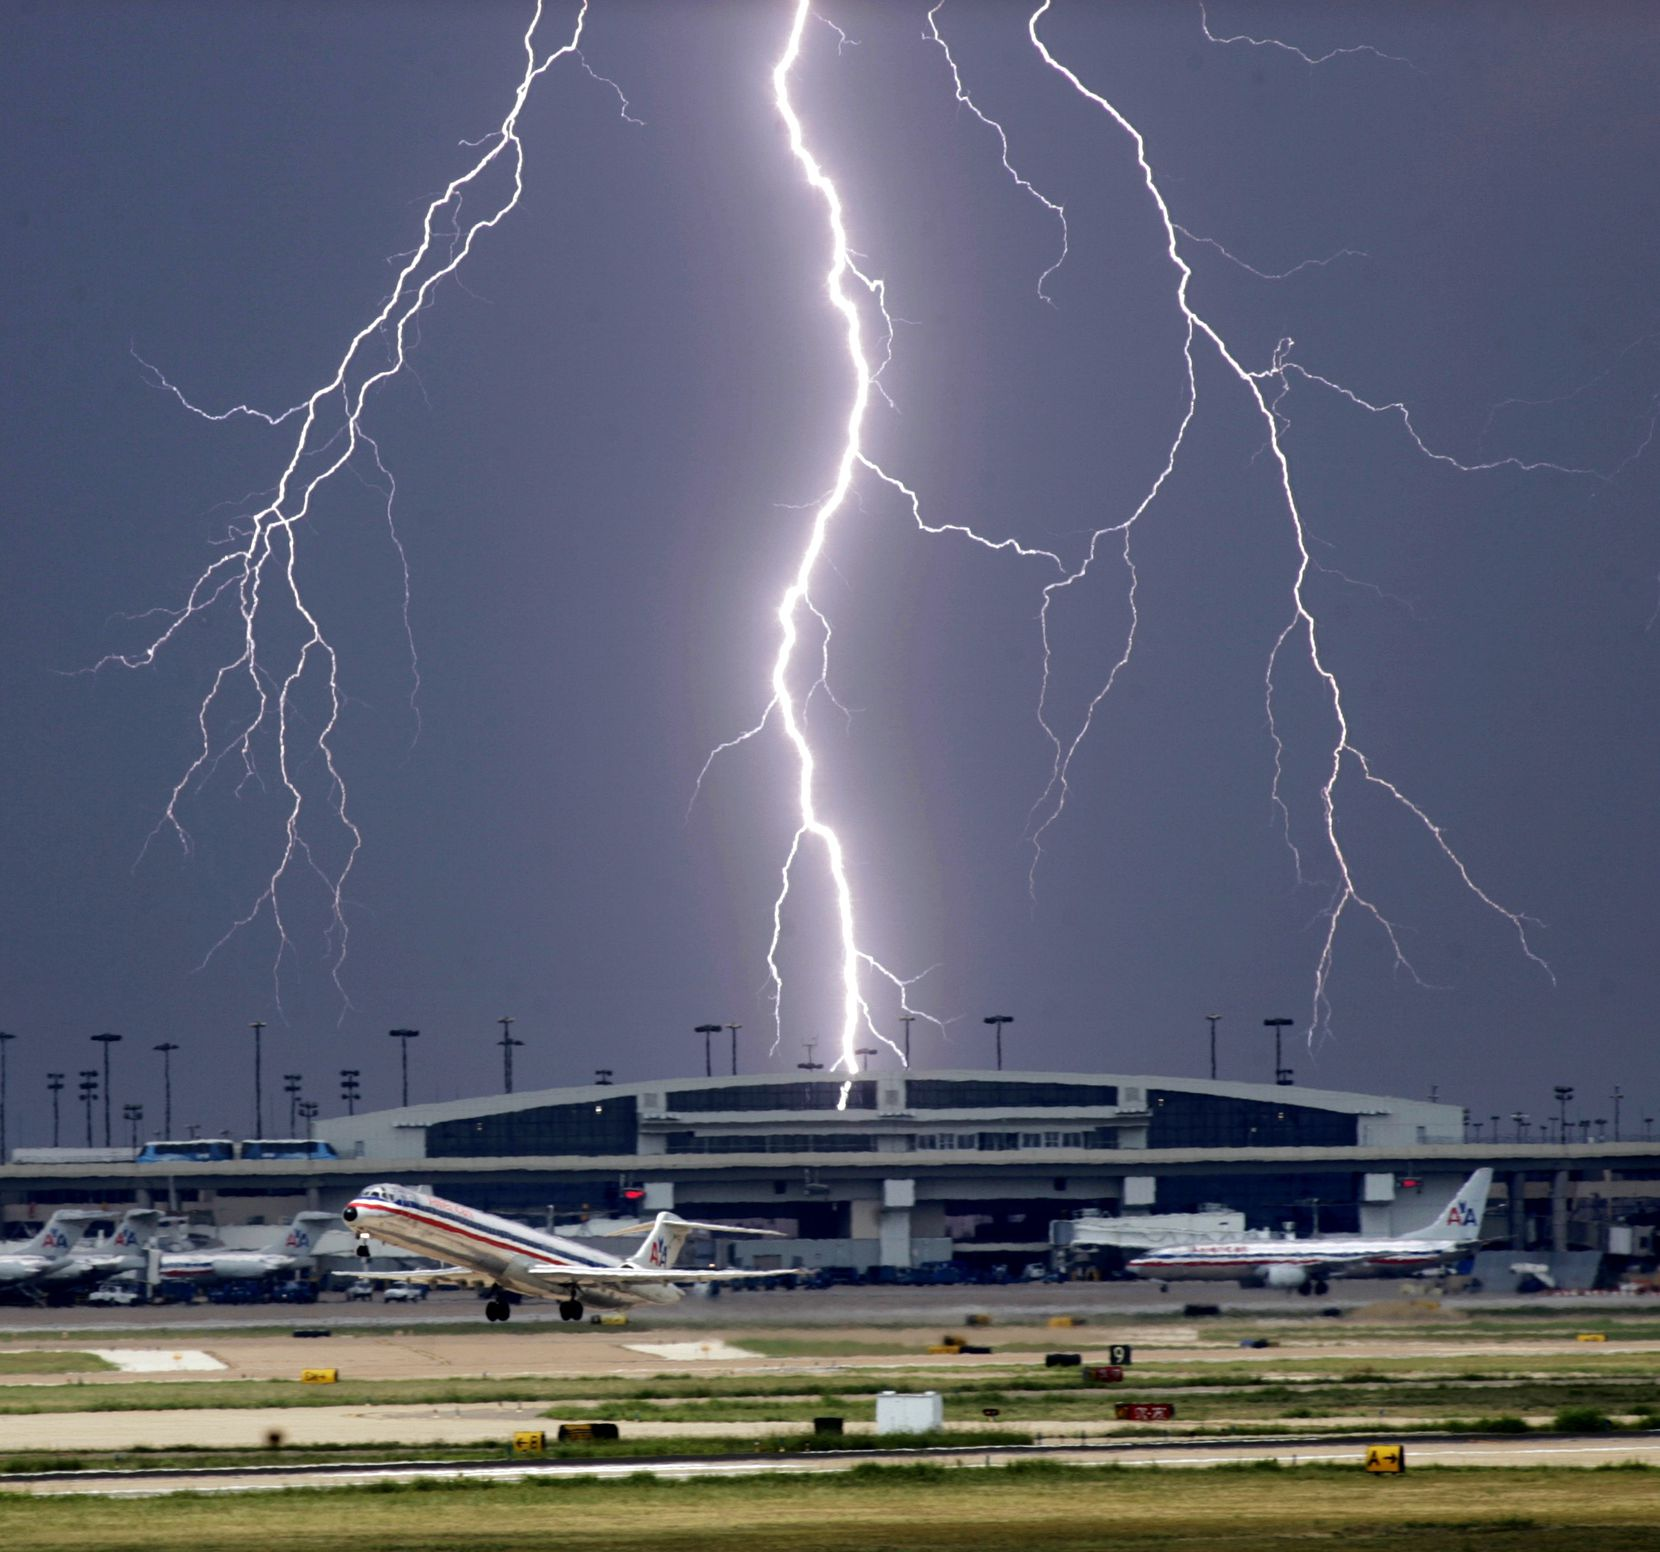 The odds of being hit by lightning in a given year are 1 in 1,171,000, the National Weather Service says. Only about 10 percent of lightning strikes are fatal.